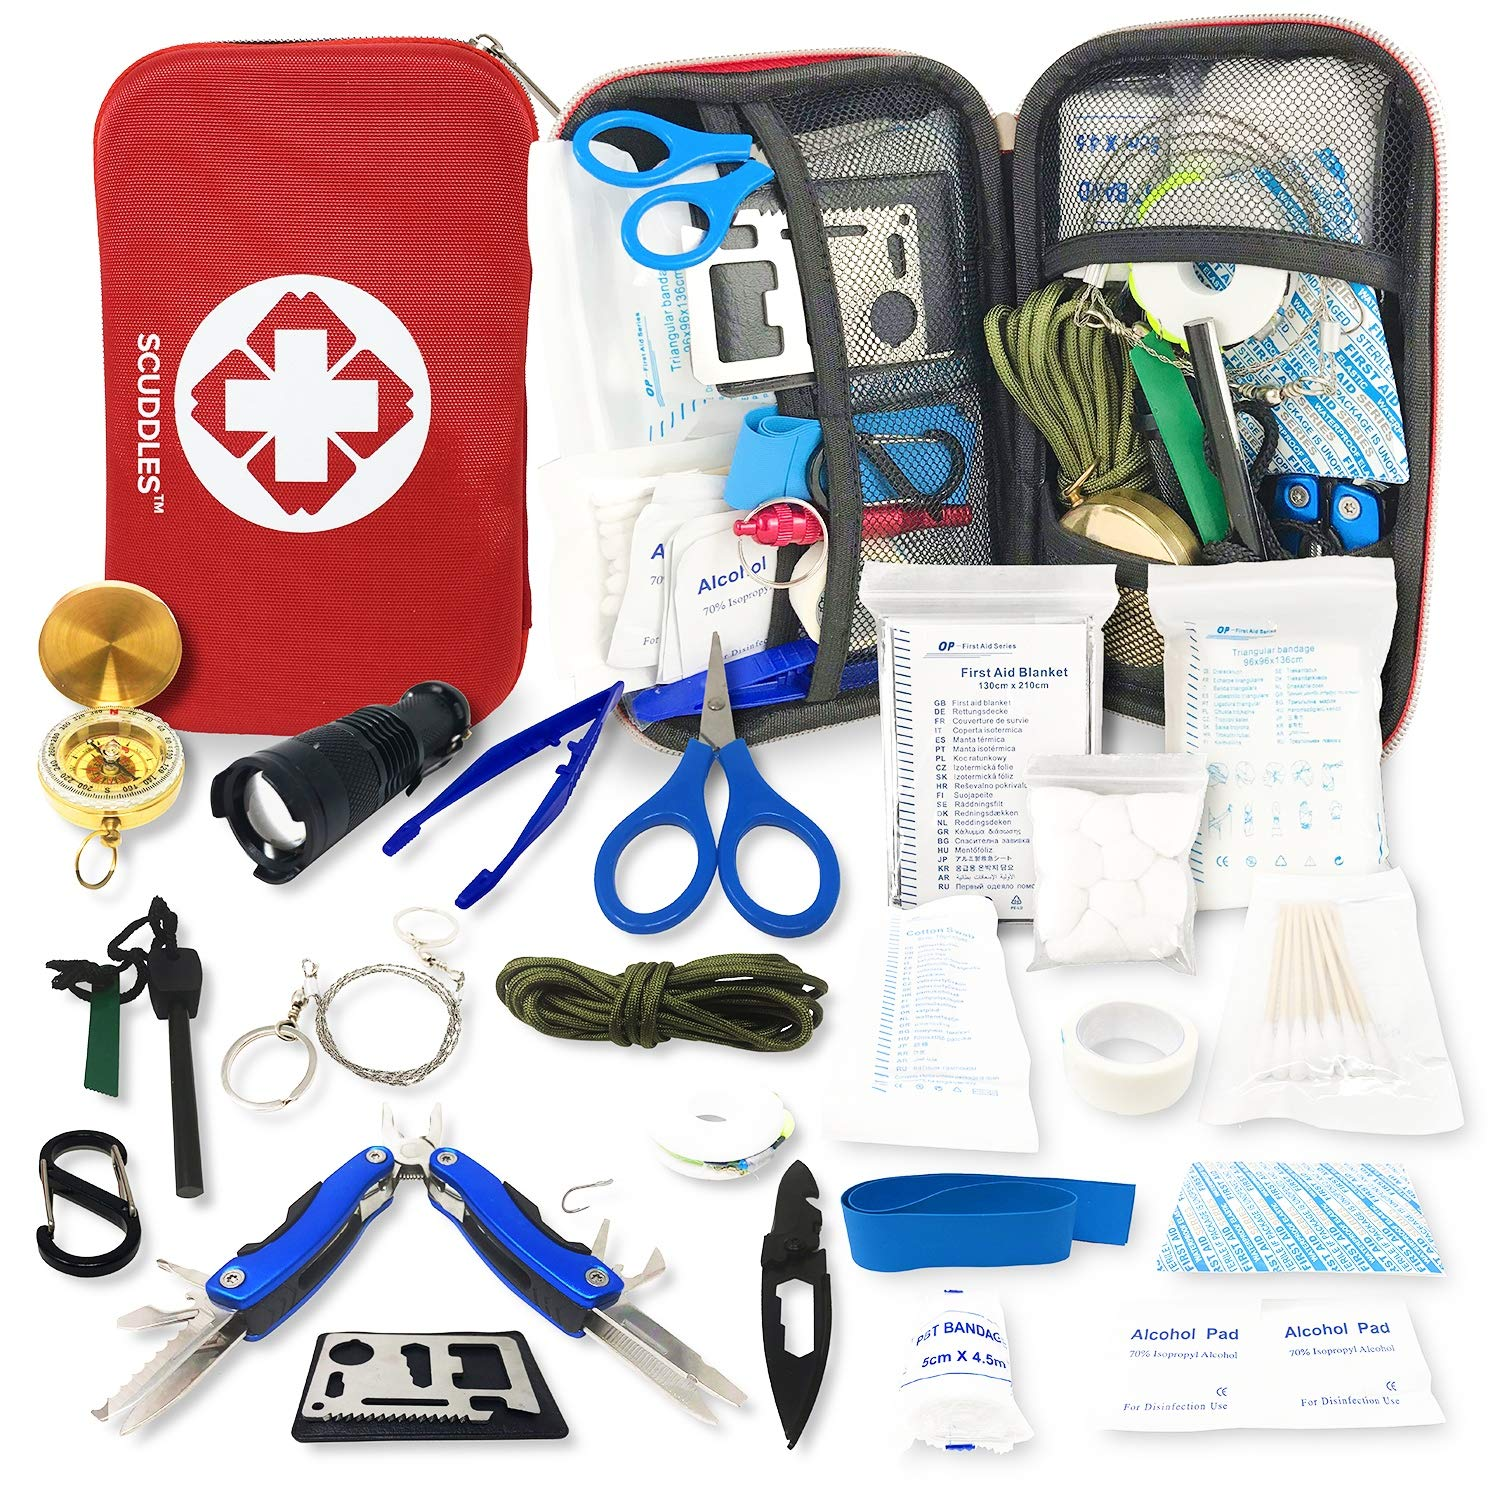 First Aid Survival Kit - Camping Emergency Trauma Kit - First Medical earthquake Kit for Car Boat Home Office Hiking Camping Hunting Travel Adventures Earthquake - Survival Gear Kit Medical Supplies by scuddles